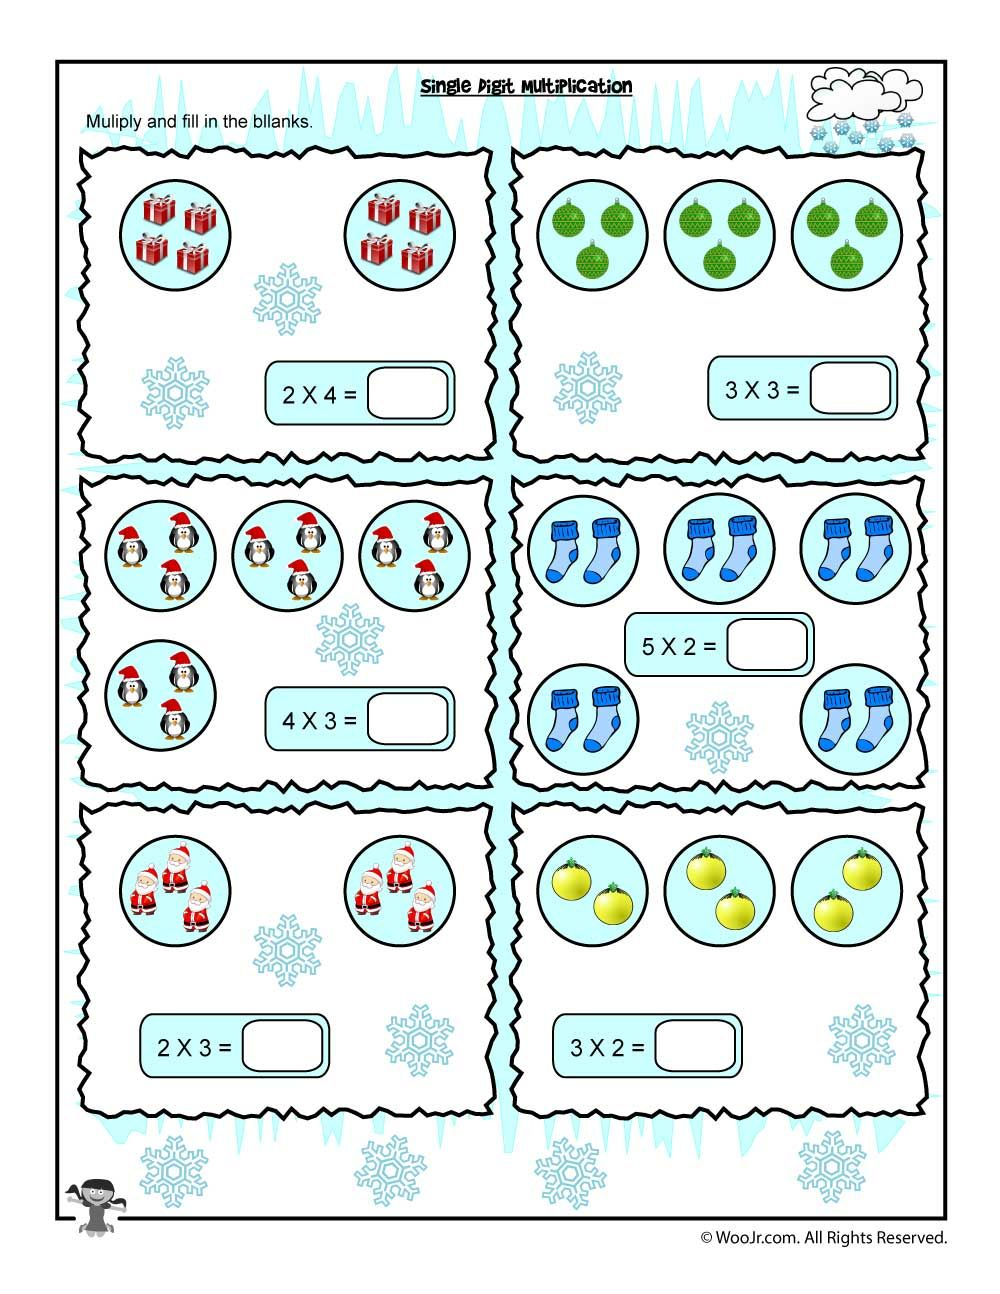 Single Digit Visual Counting Multiplication Worksheet ...